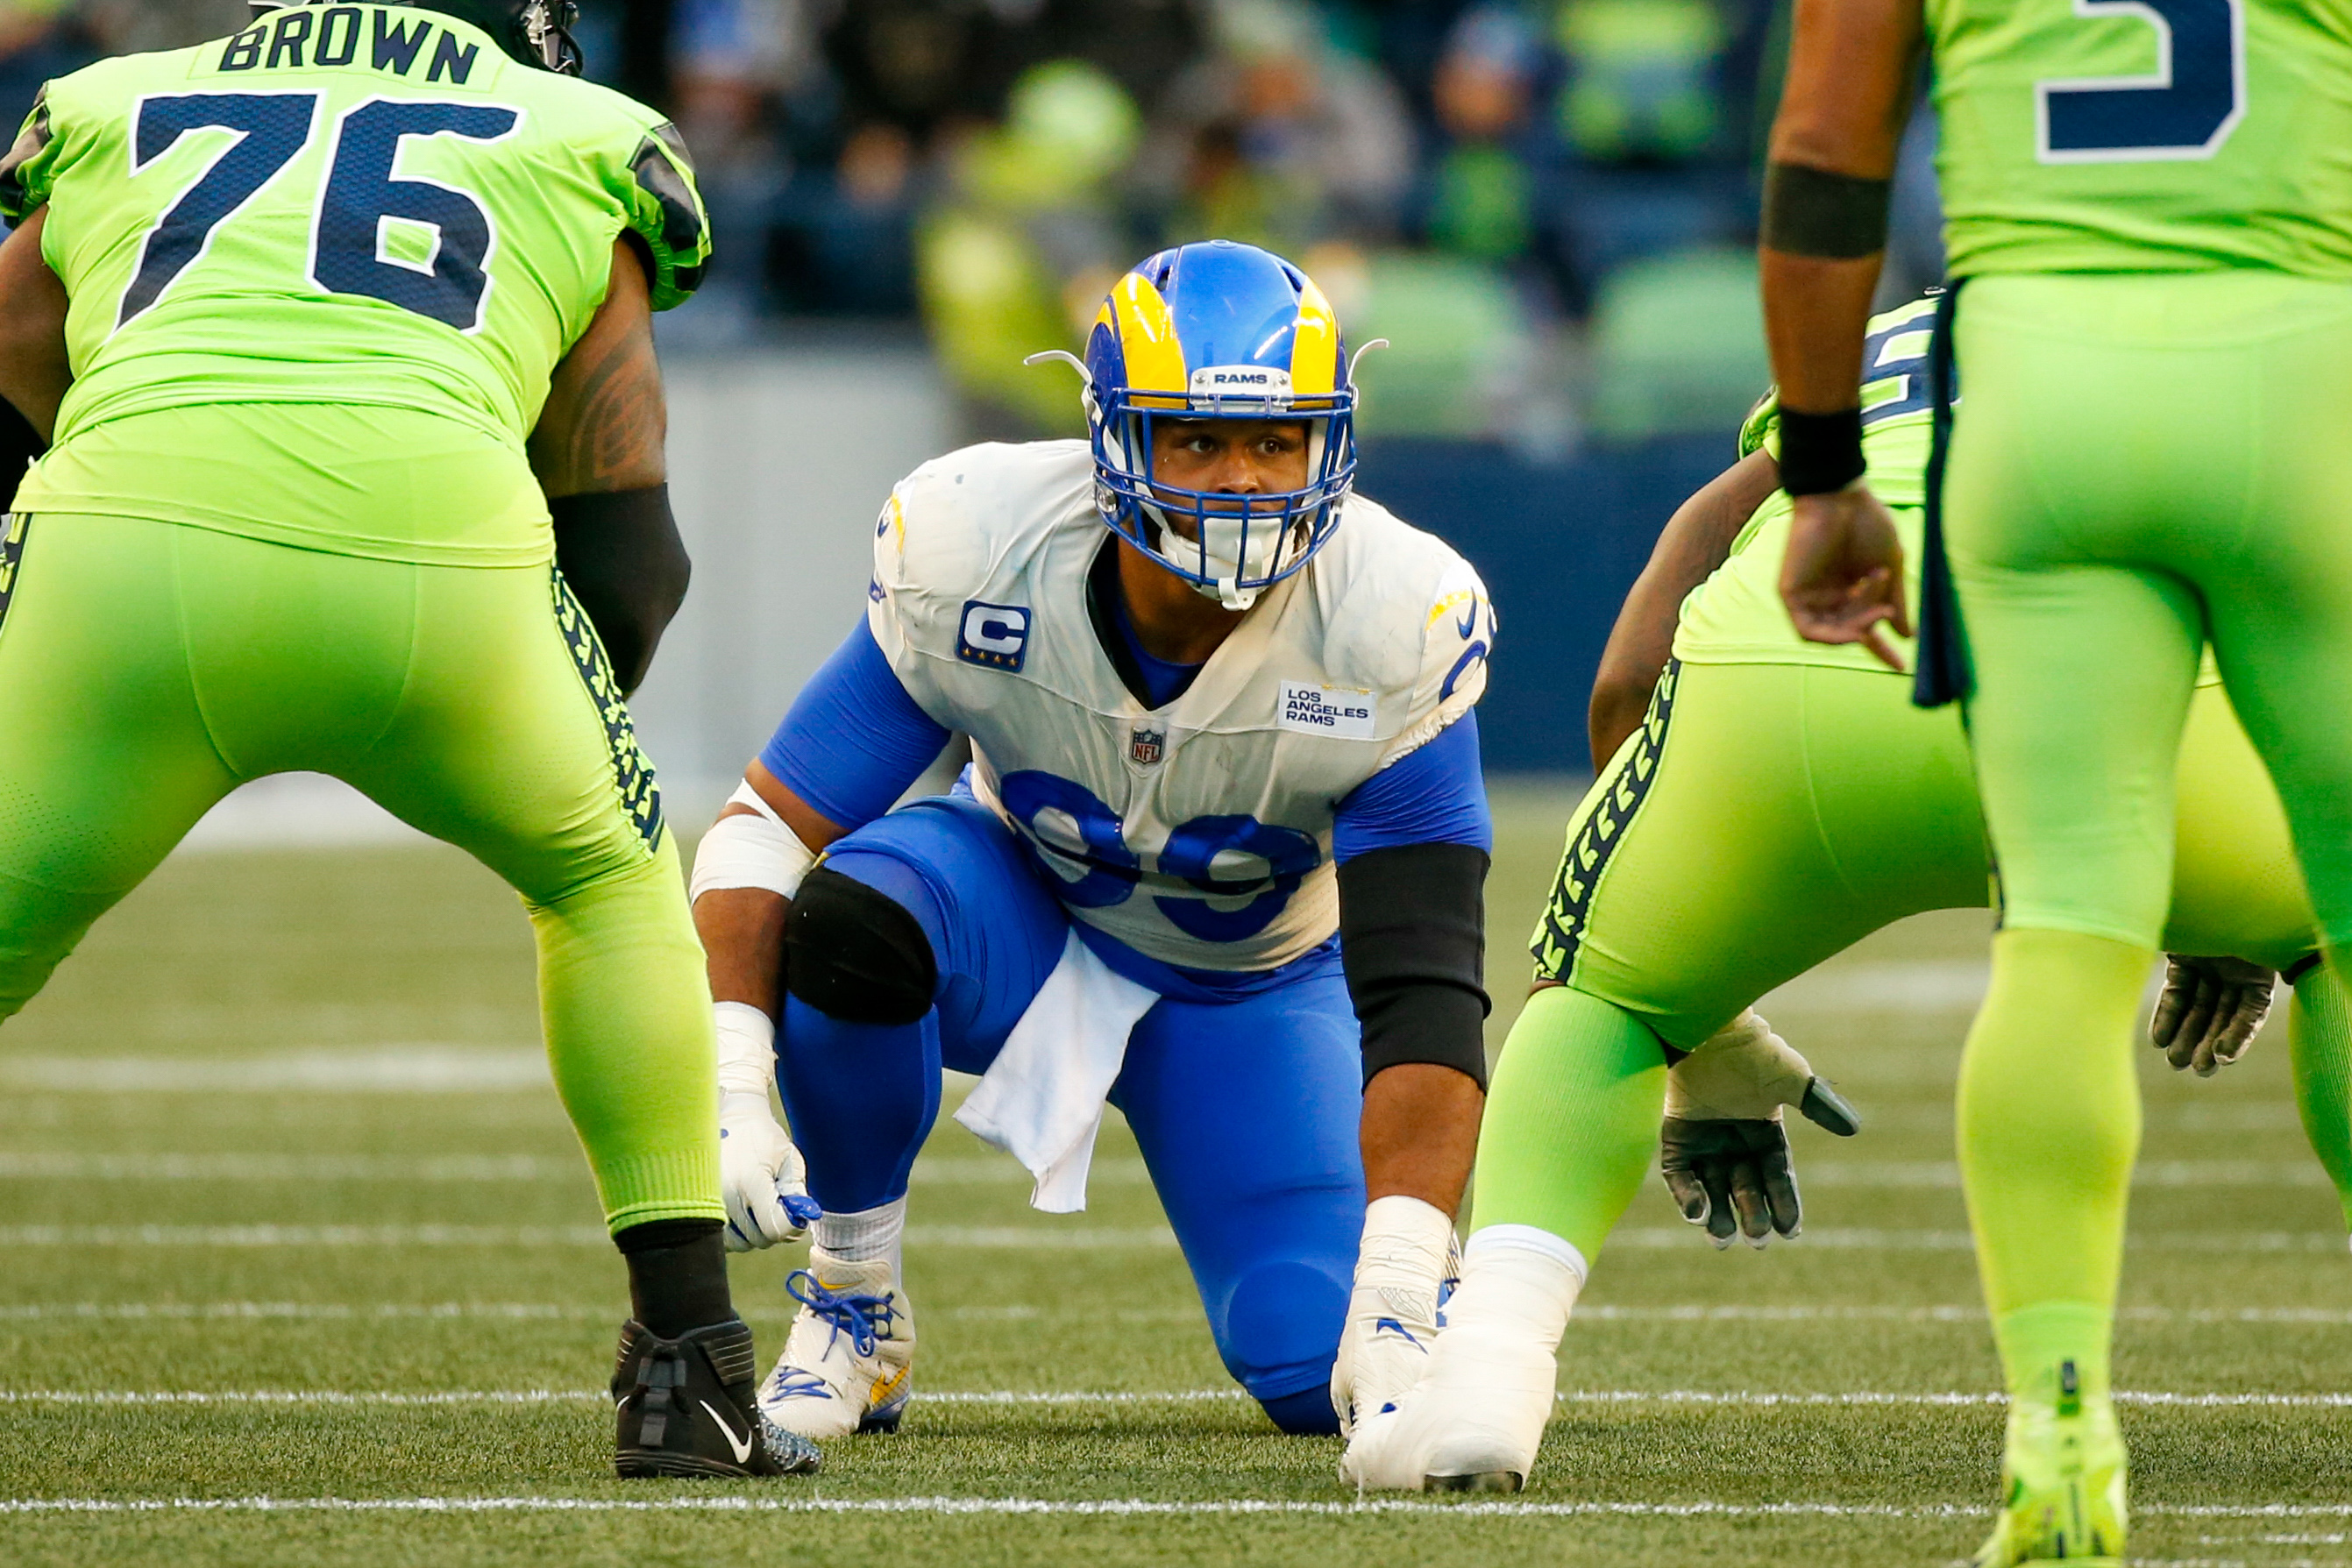 Los Angeles Rams defensive end Aaron Donald (99) waits for a snap against the Seattle Seahawks during the second quarter at Lumen Field.